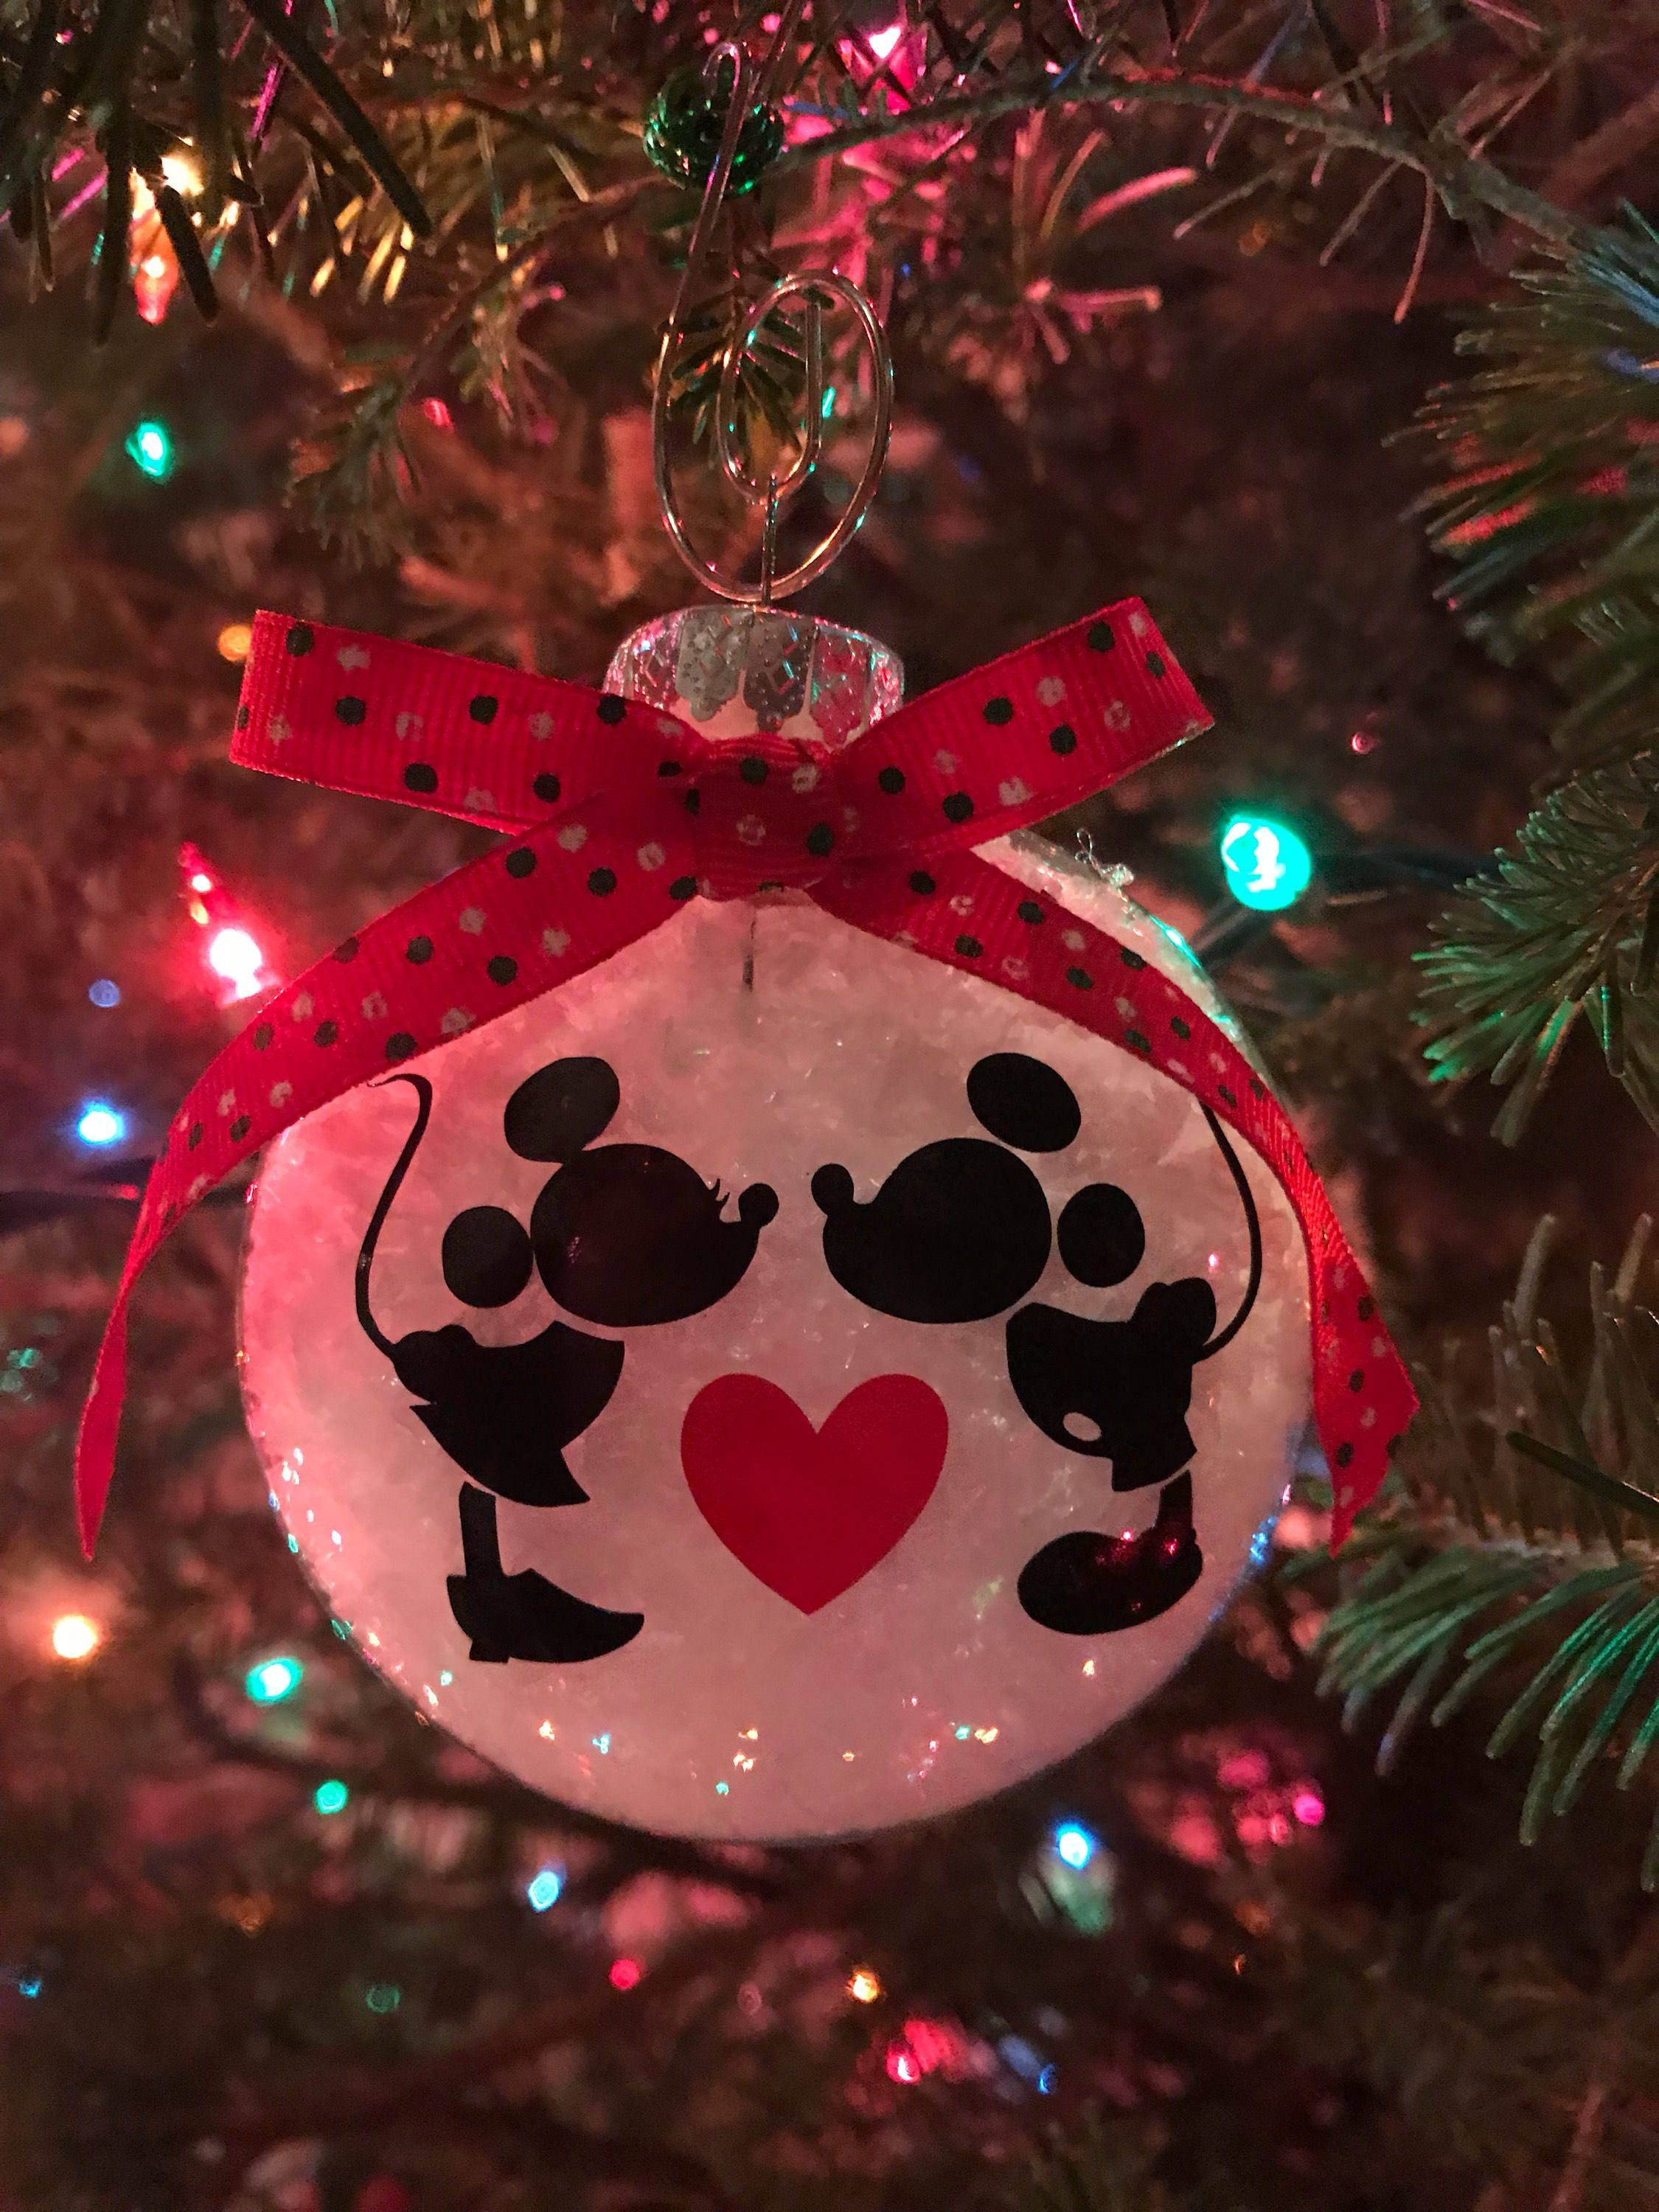 Disneychristmastree In 2020 Christmas Ornaments Disney Ornaments Diy Disney Christmas Decorations